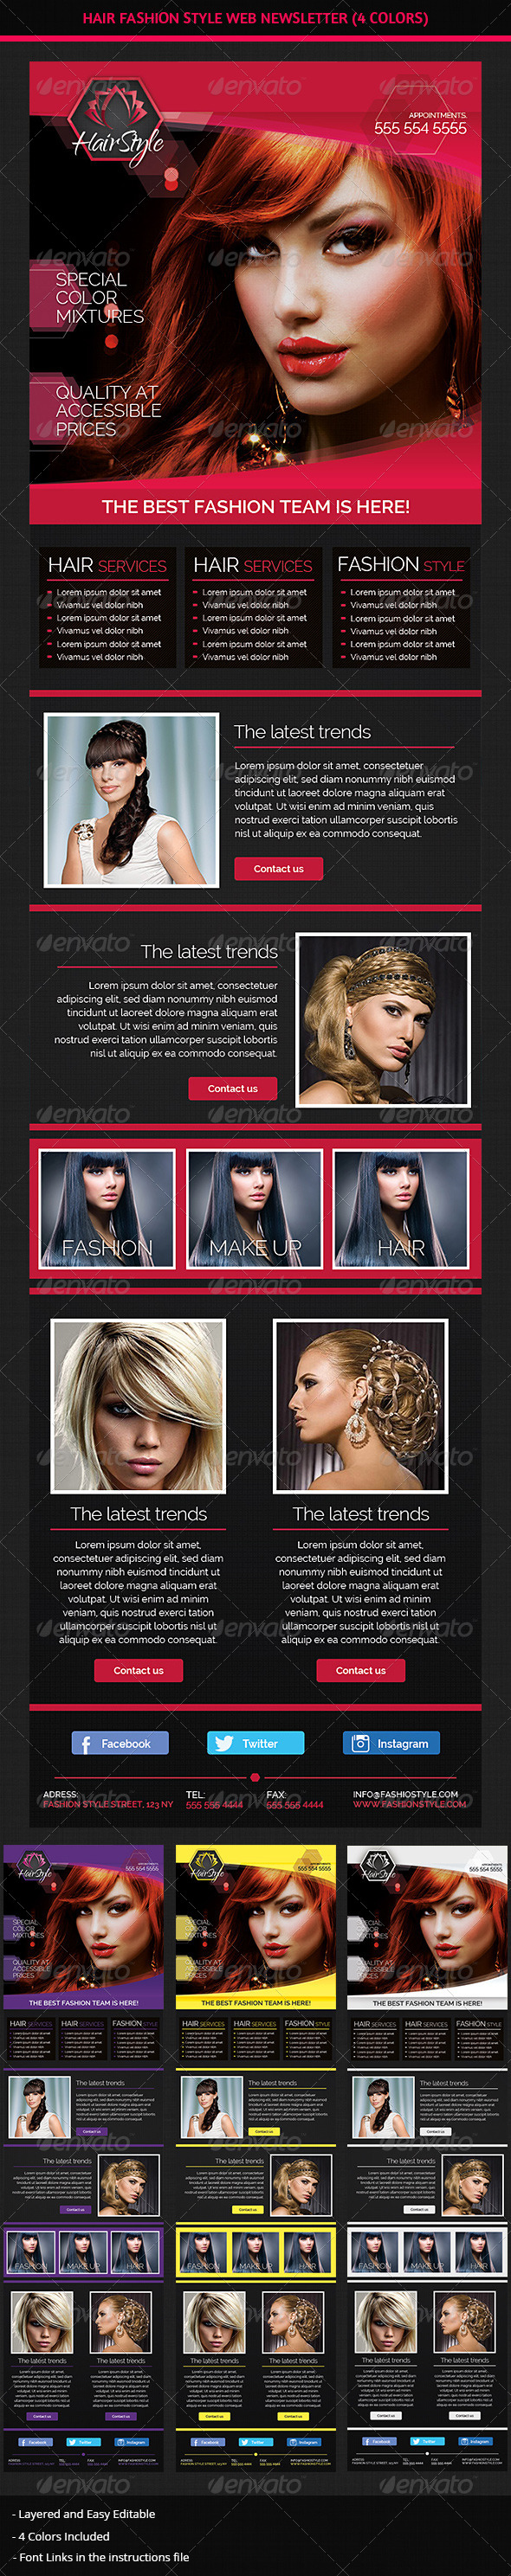 GraphicRiver Hair Salon Fashion Style Web Newsletter 7405134